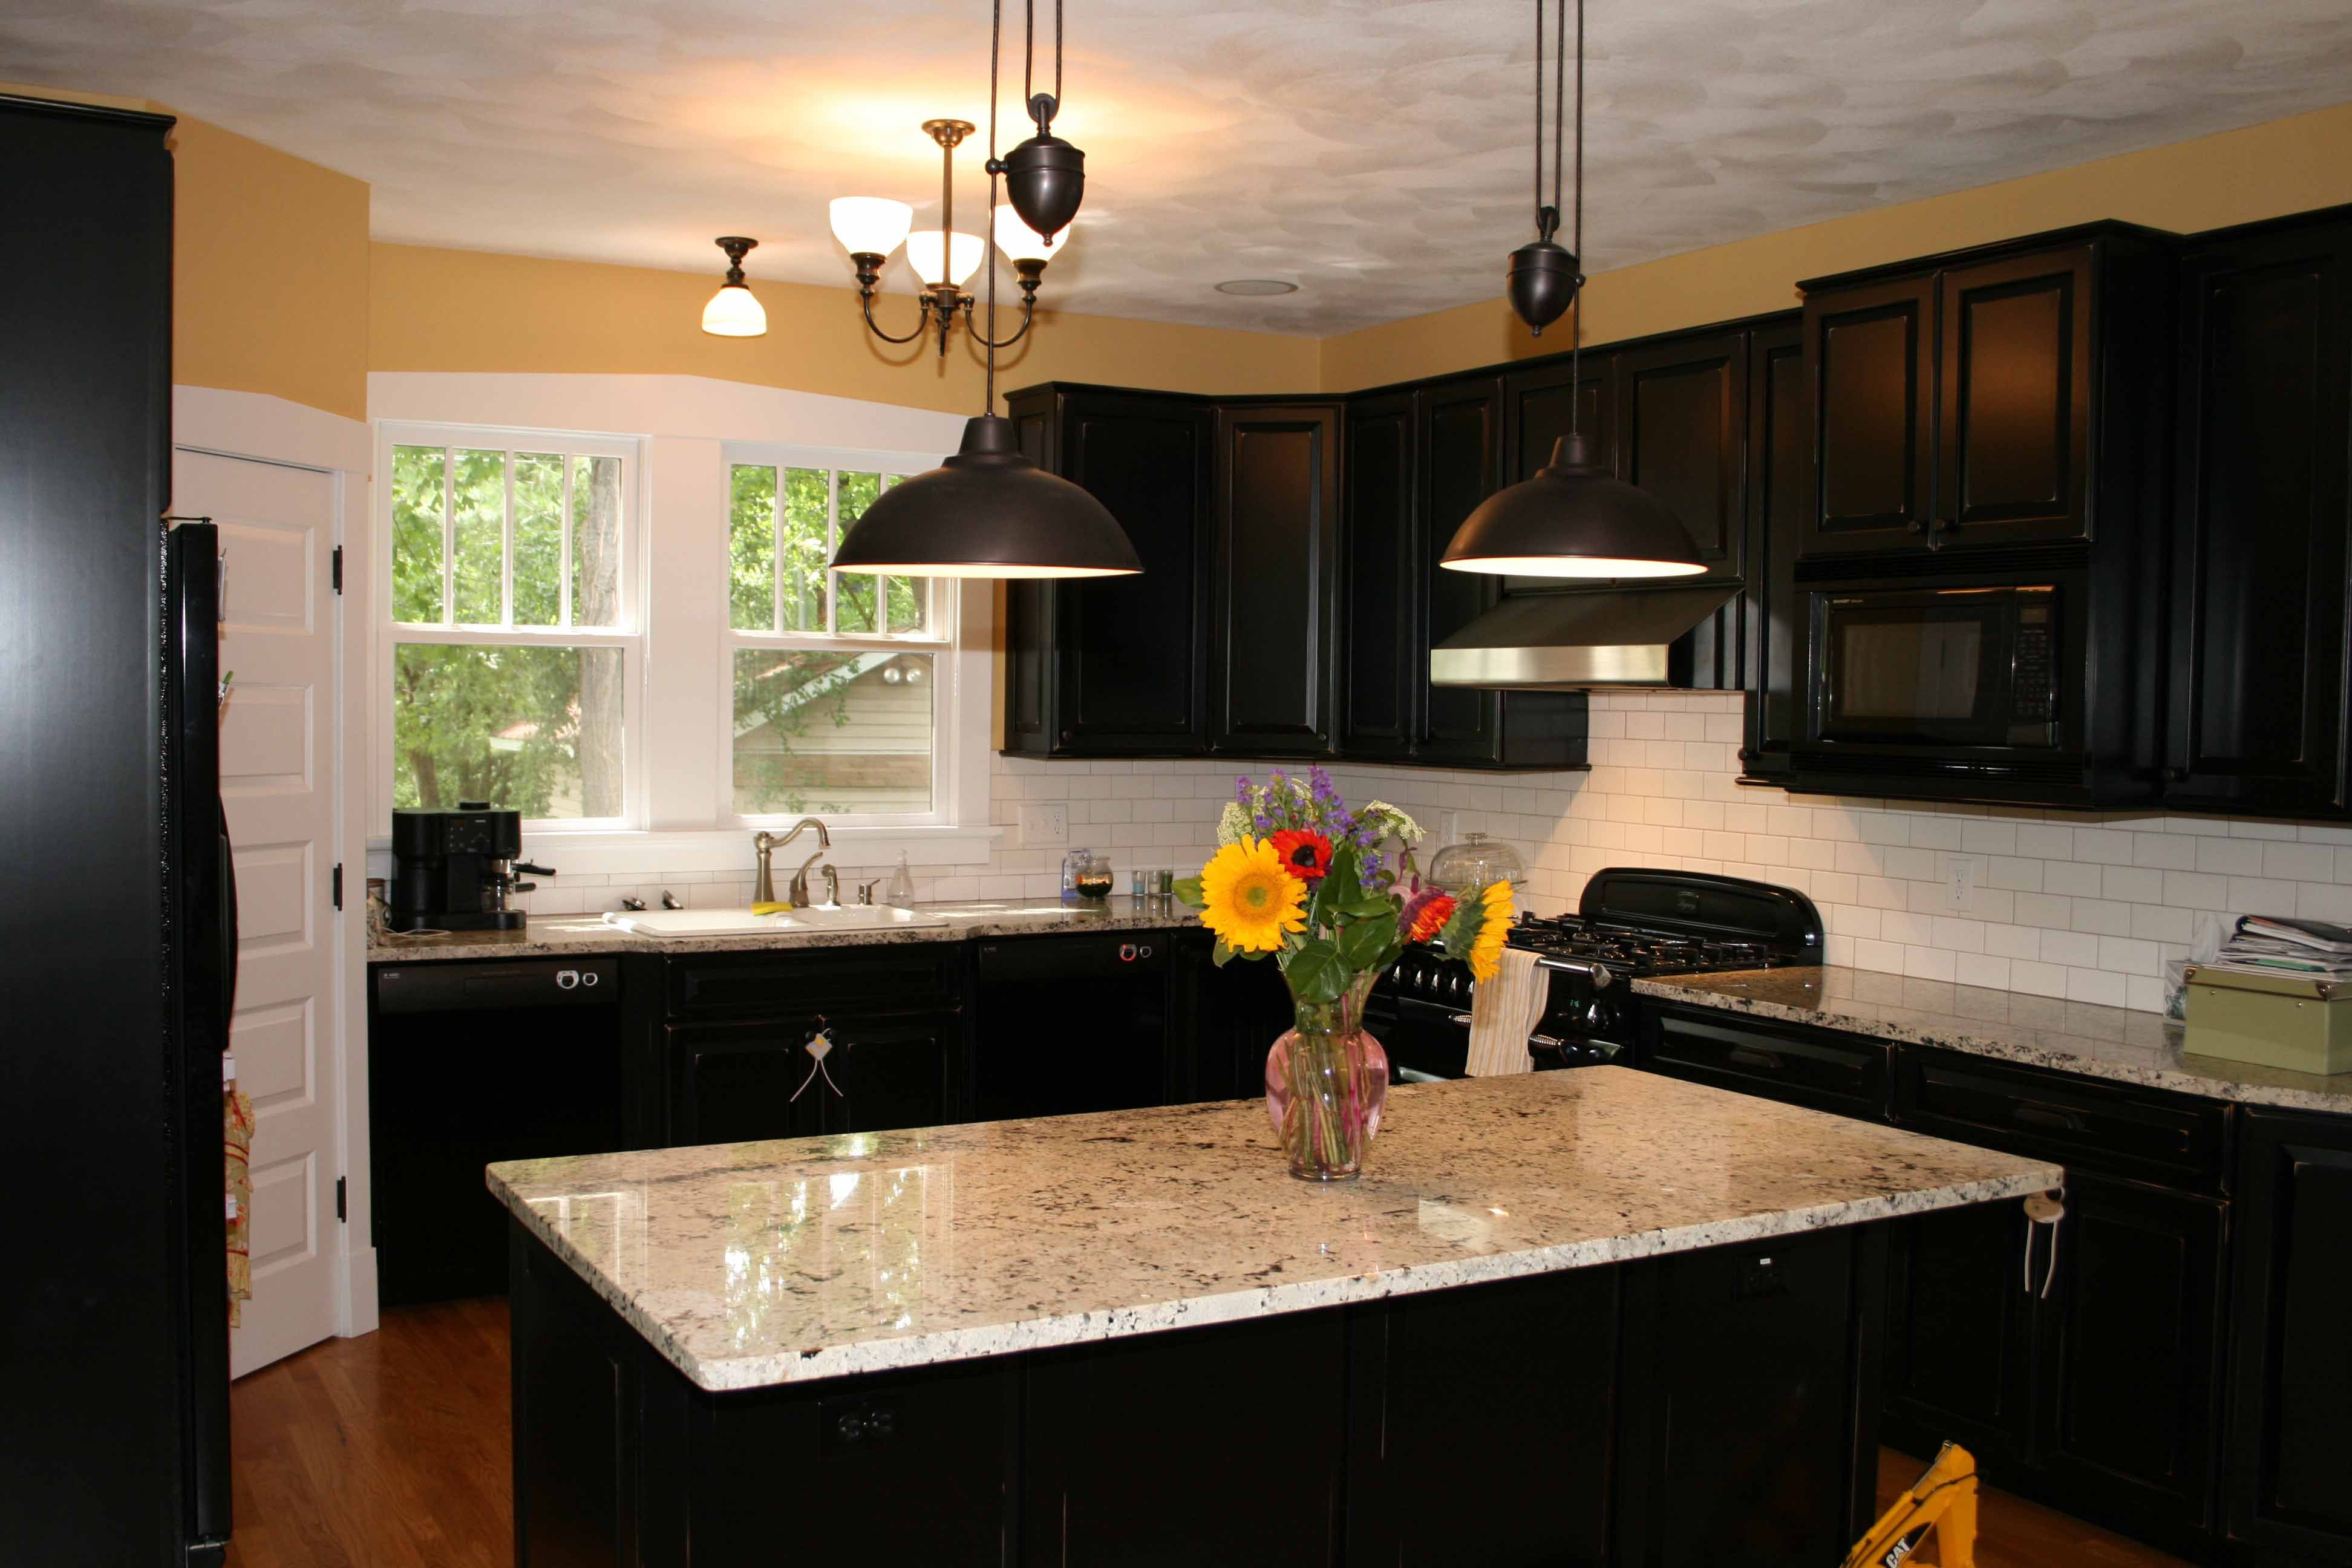 Kitchen Backsplash Tiles Dark Cabinets Kitchen Backsplash Designs. Kitchen Cabinets Colors Ideas. 77 My Gray Kitchen Ongreen Cabinets. Change The Look Of Your House To Be Like A New Home Interior